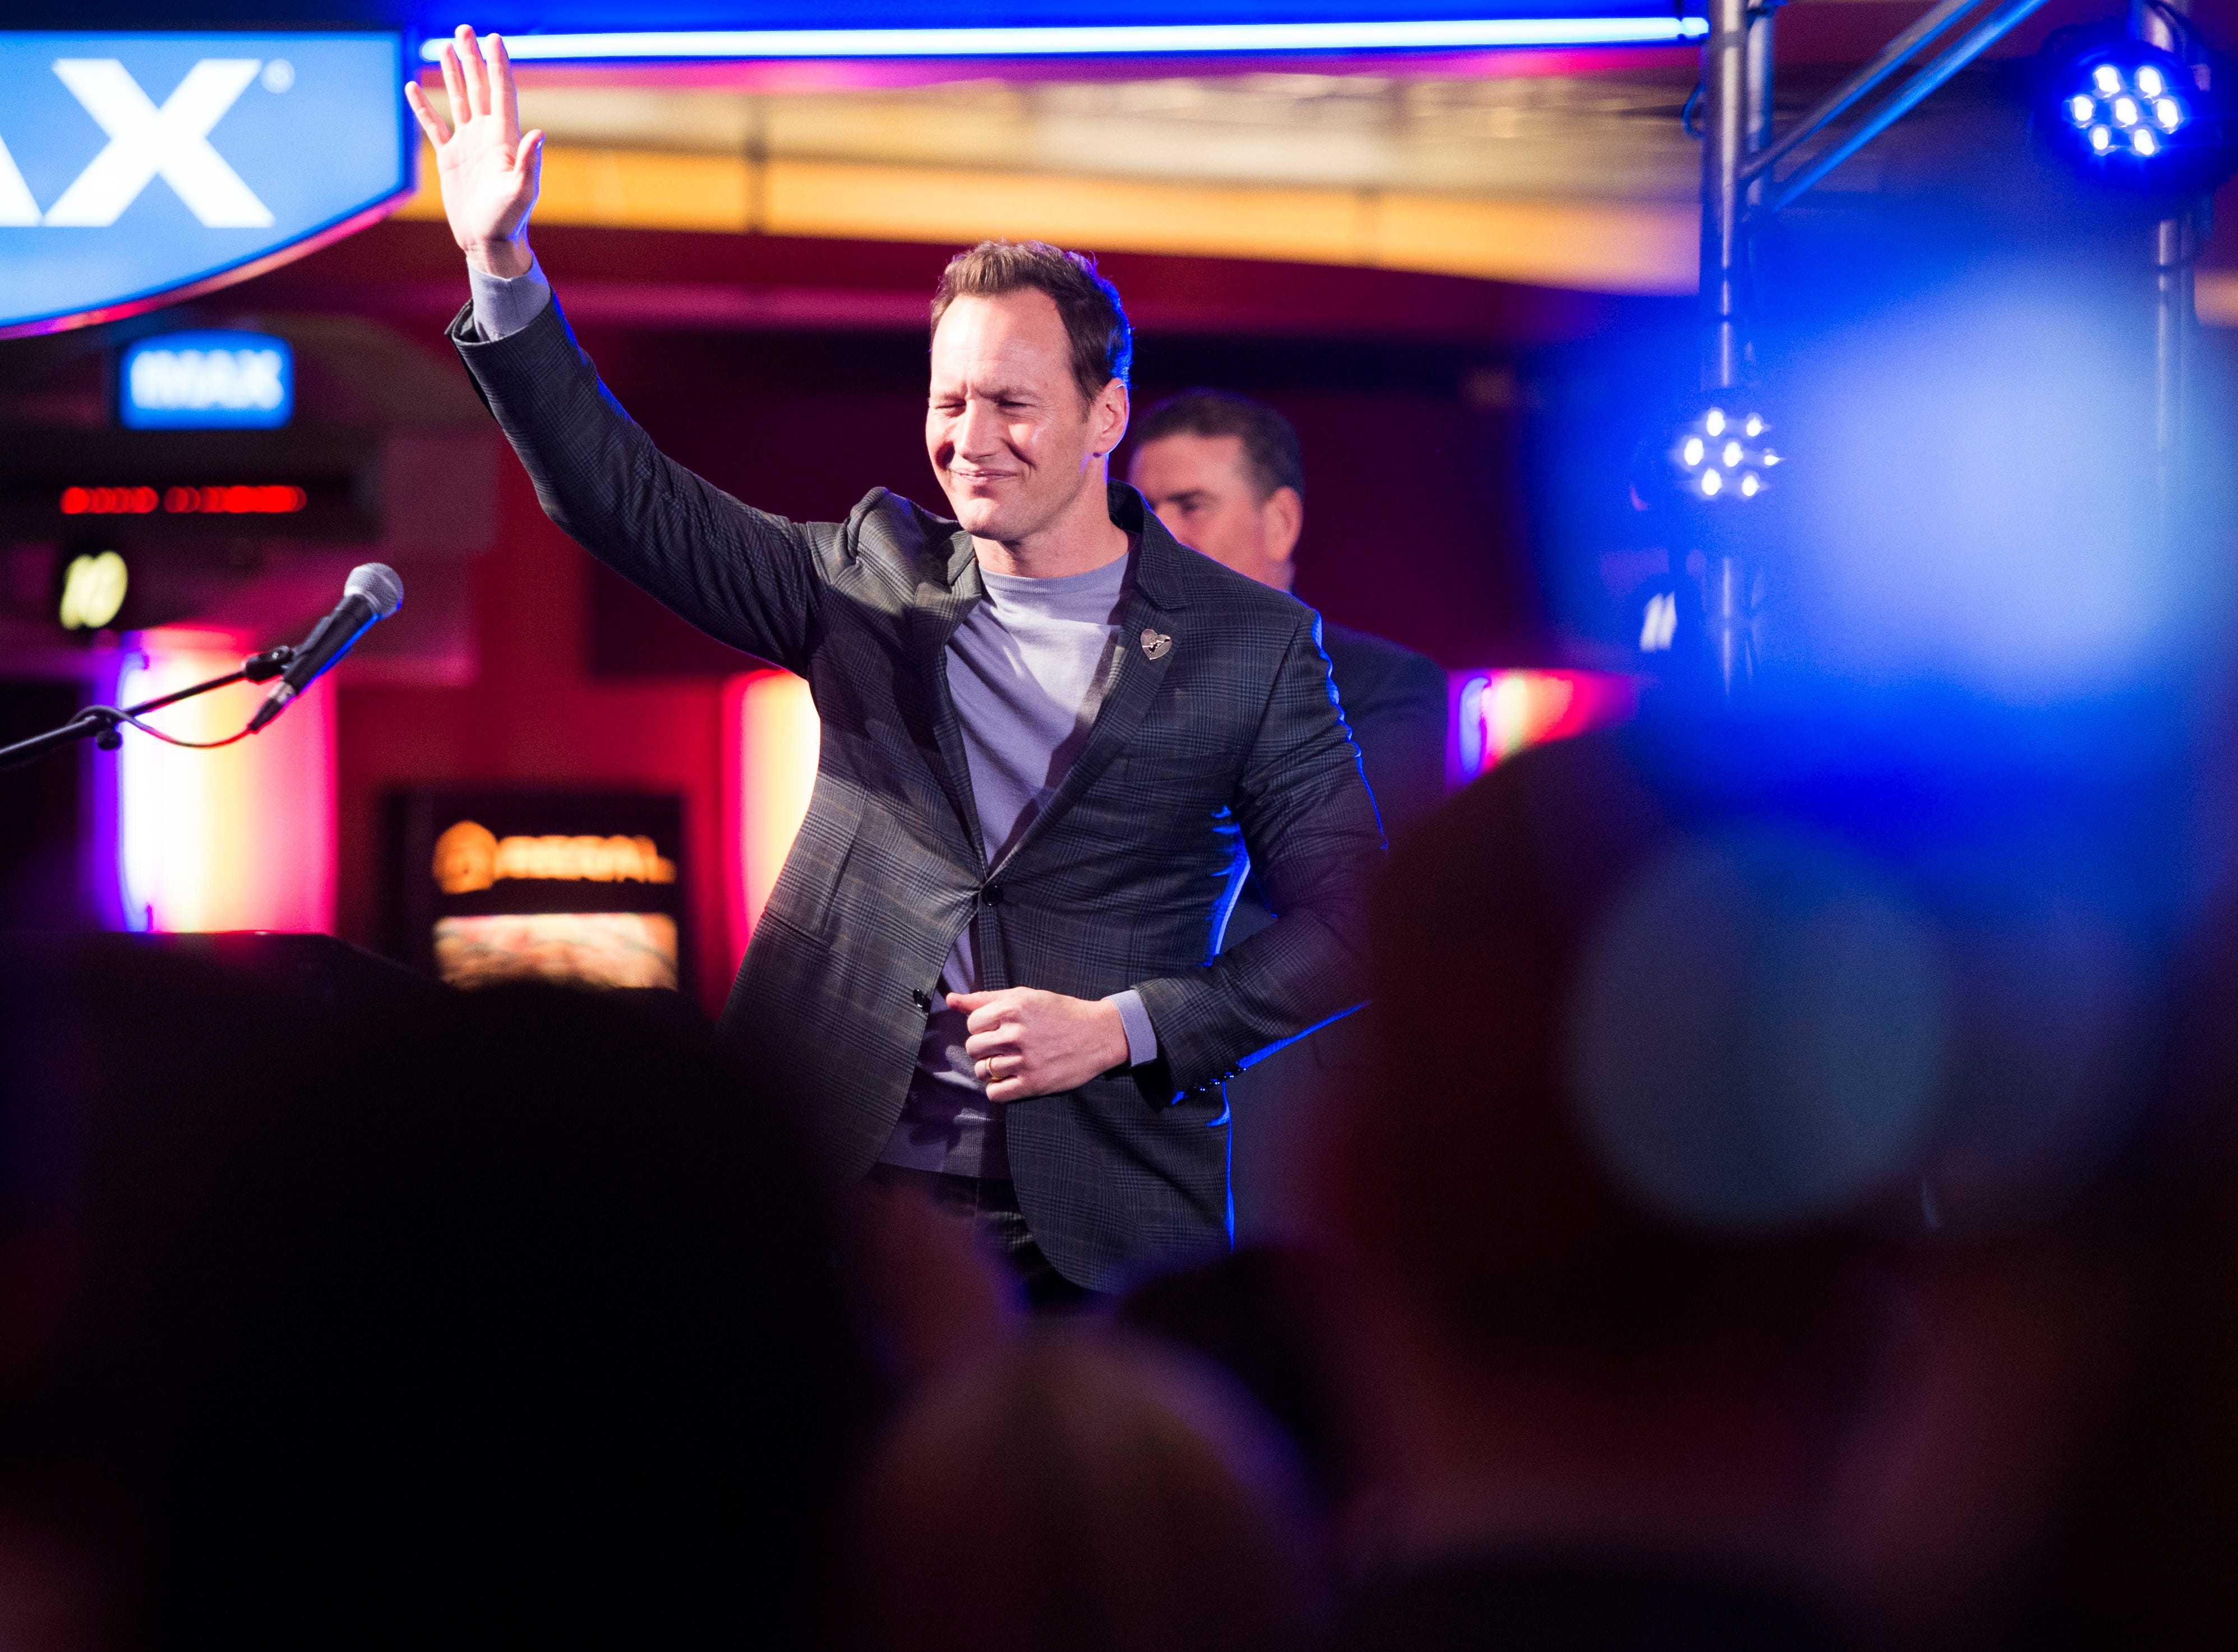 """""""Aquaman"""" star Patrick Wilson waves to attendees as he leaves the stage at Regal's annual red carpet premiere for Variety at Regal Pinnacle Stadium 18, Thursday, Dec. 13, 2018."""